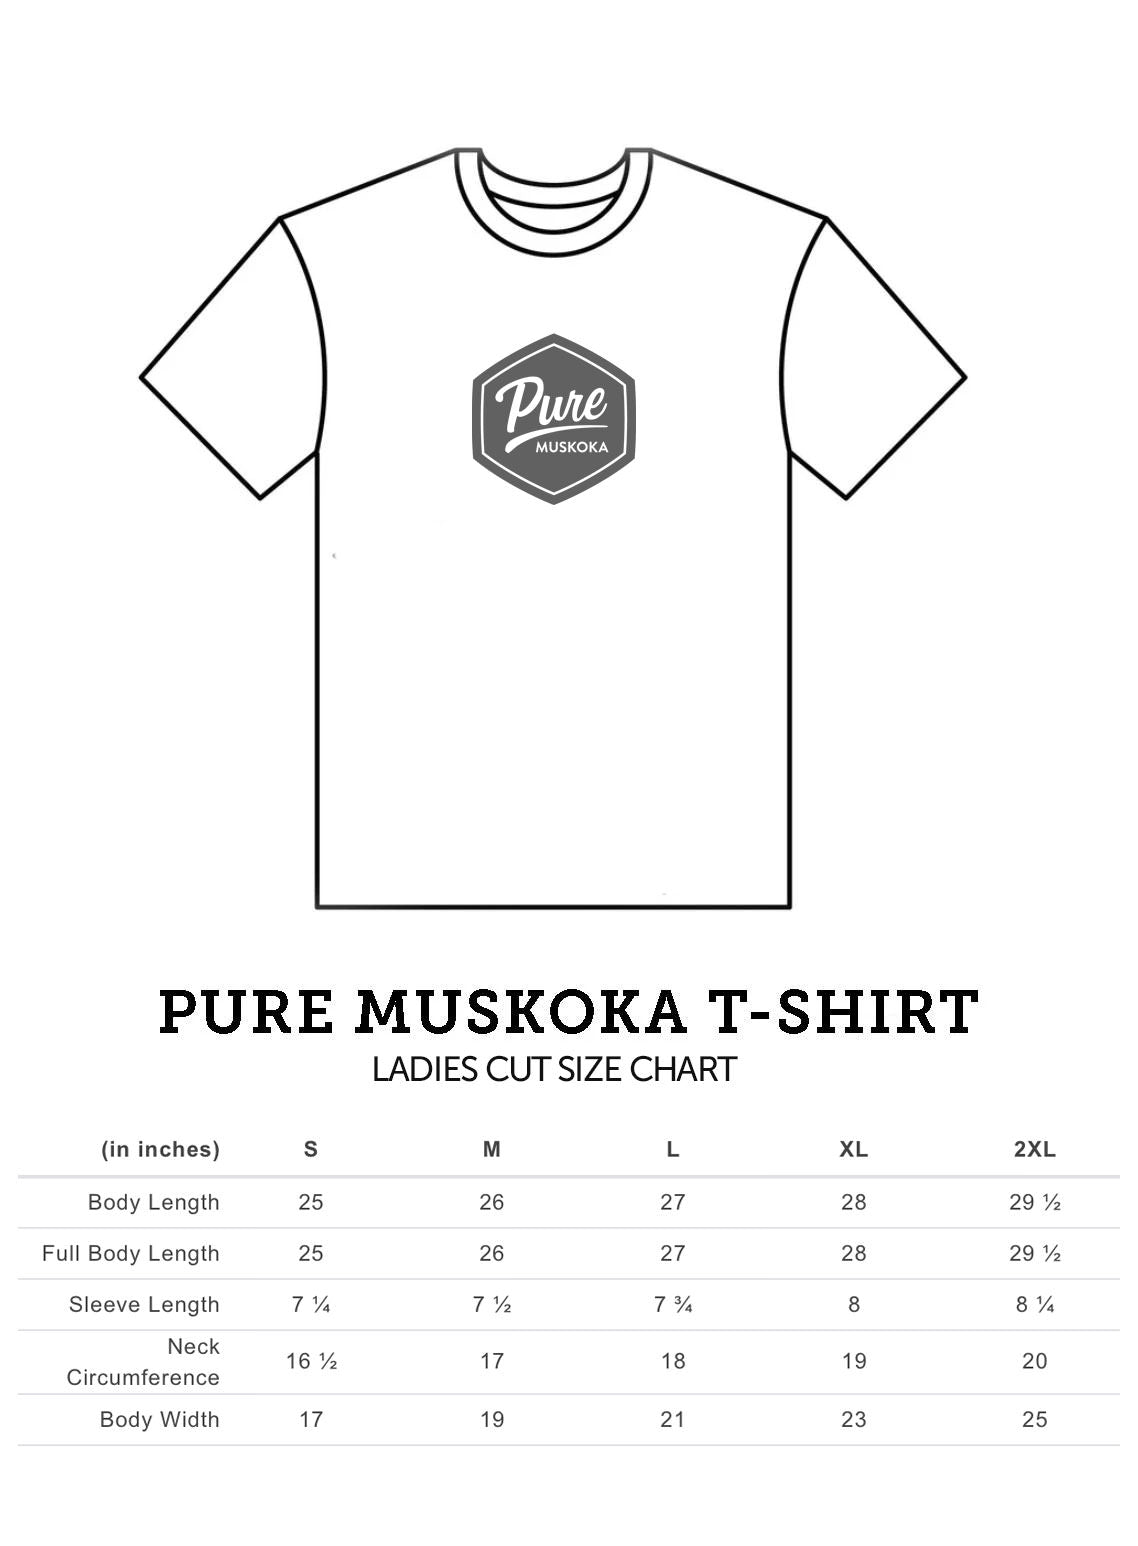 Pure Muskoka Ladies T-Shirt Size Chart